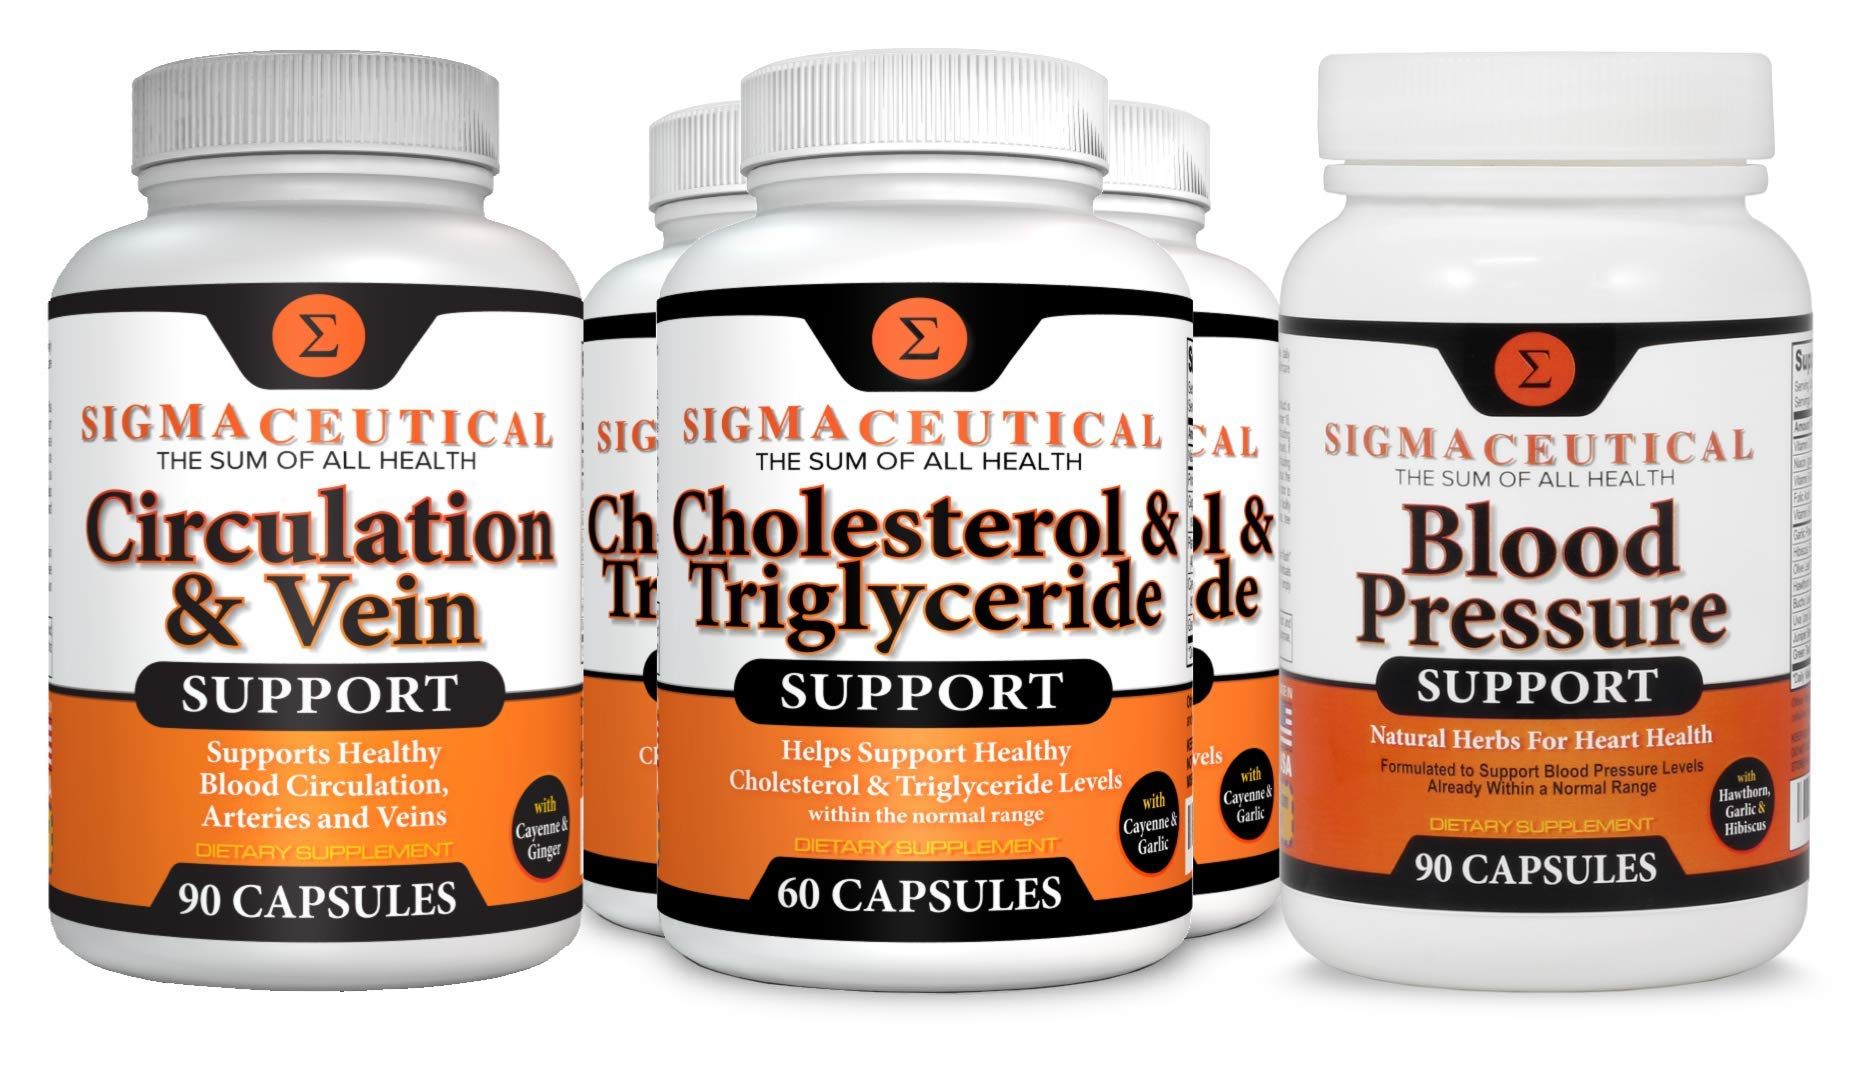 Cardio Big Bundle - Blood Pressure, Cholesterol Lowering & Circulation Supplements – 3 Month Supply